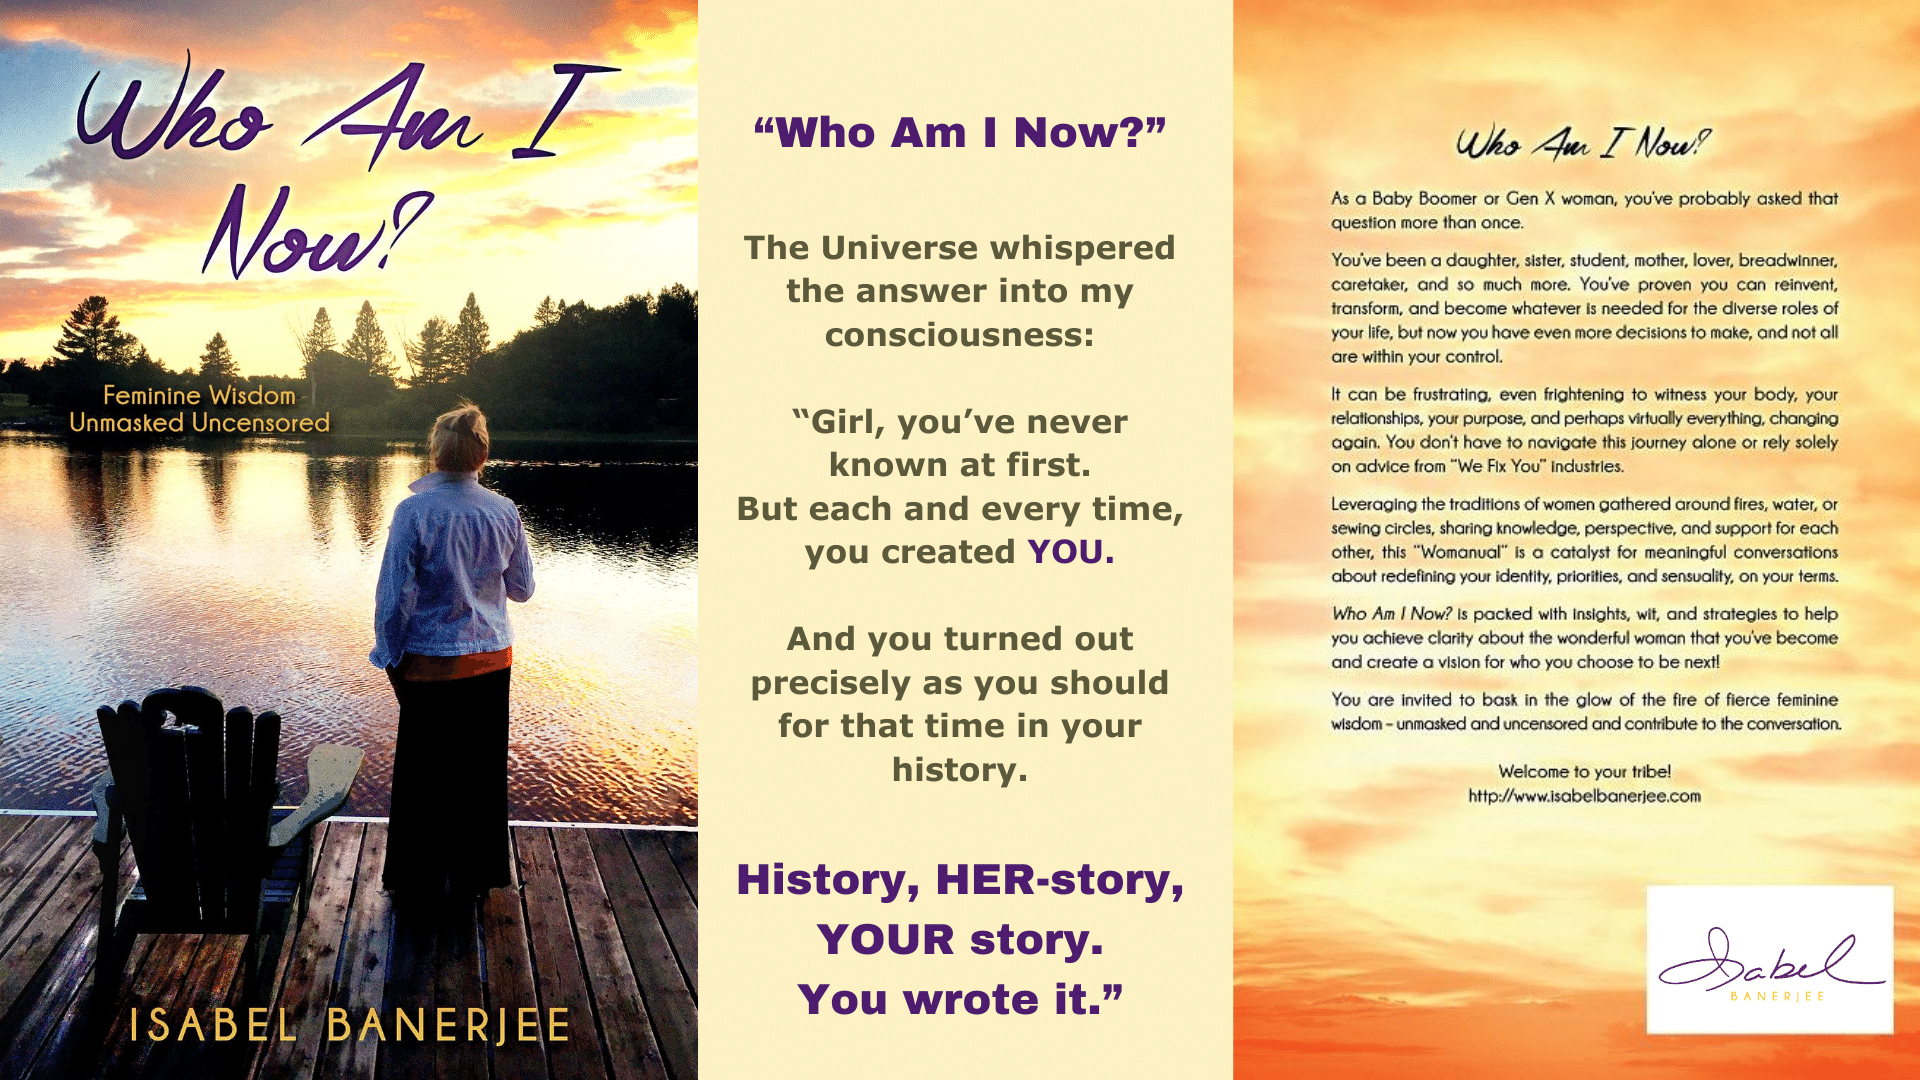 Who Am I Now, Book Covers with Author Quote